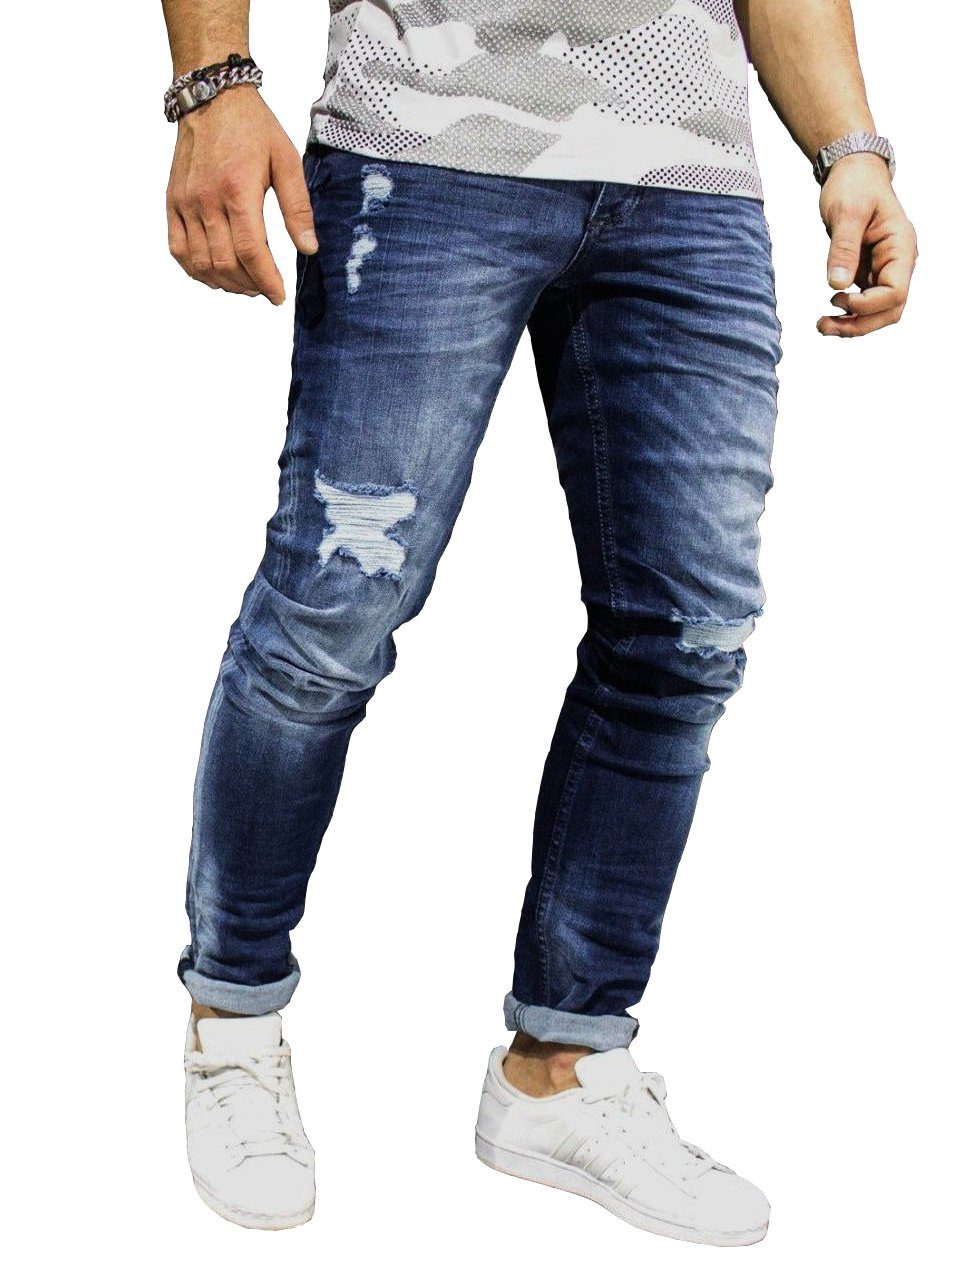 Men's Ripped Destroyed Jeans Slim Fit Distressed Denim Pants Trousers Blue003 34 by Sarriben